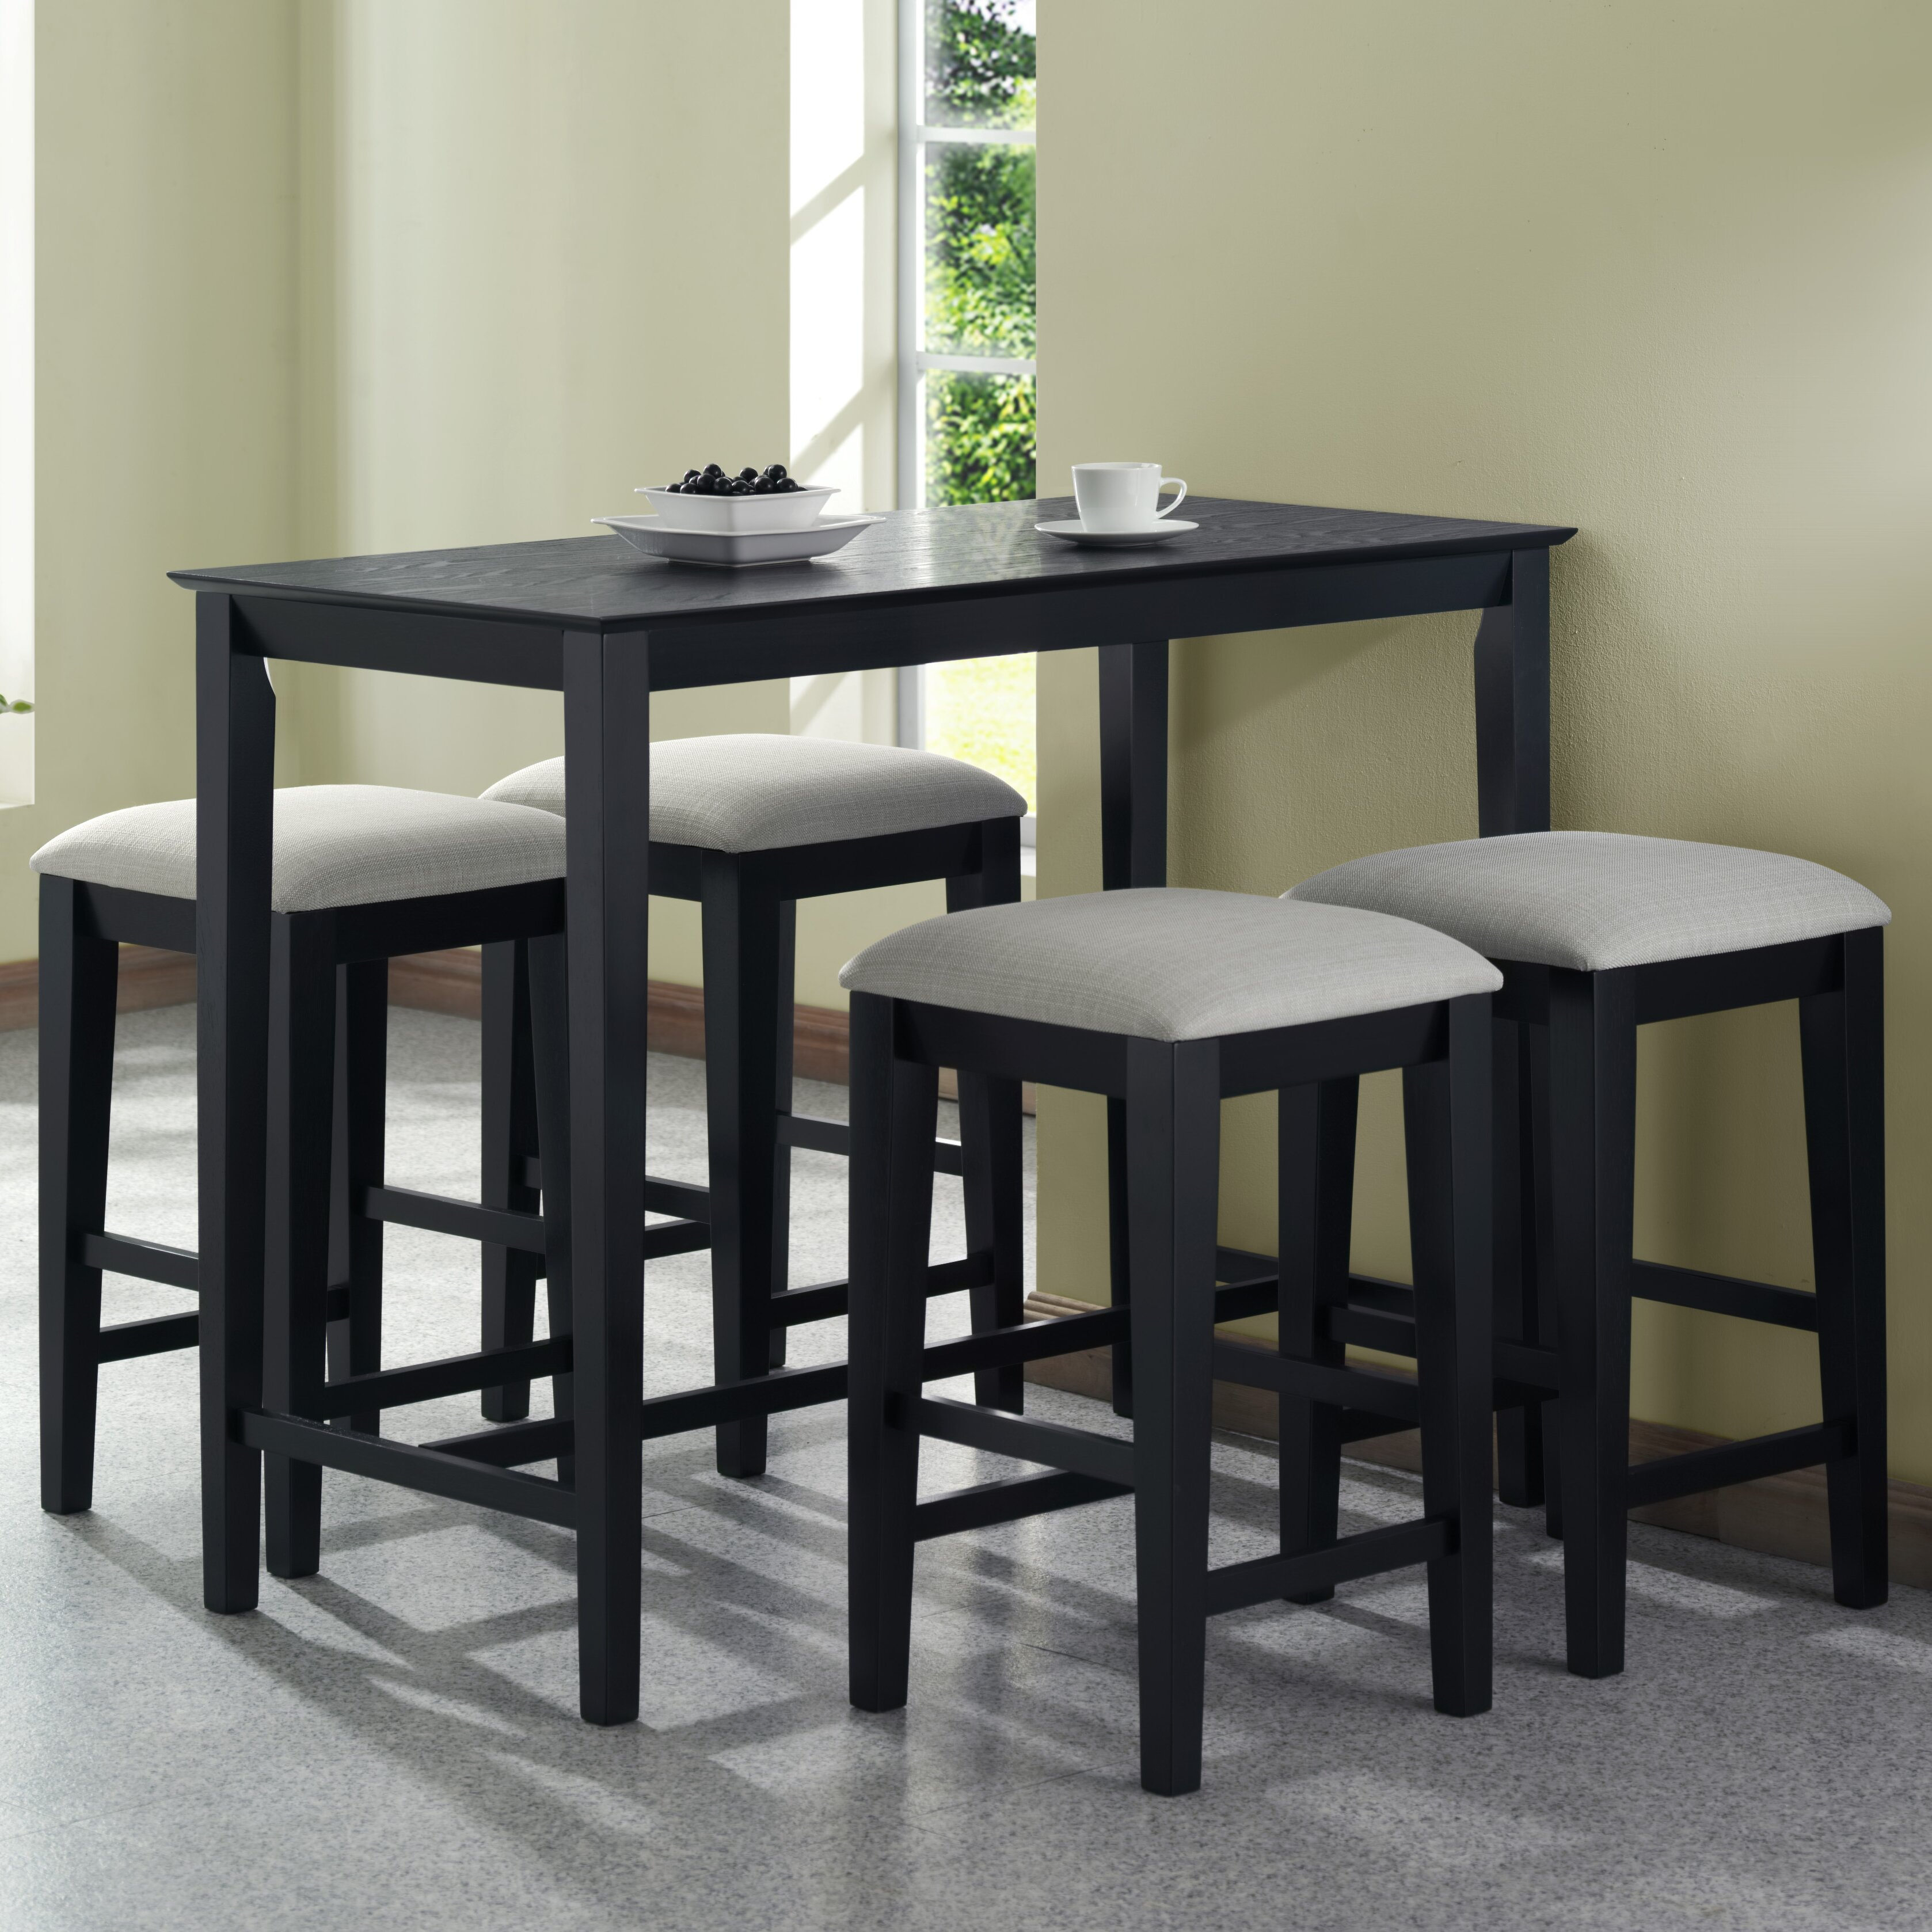 Monarch Specialties Inc. Counter Height Kitchen Table